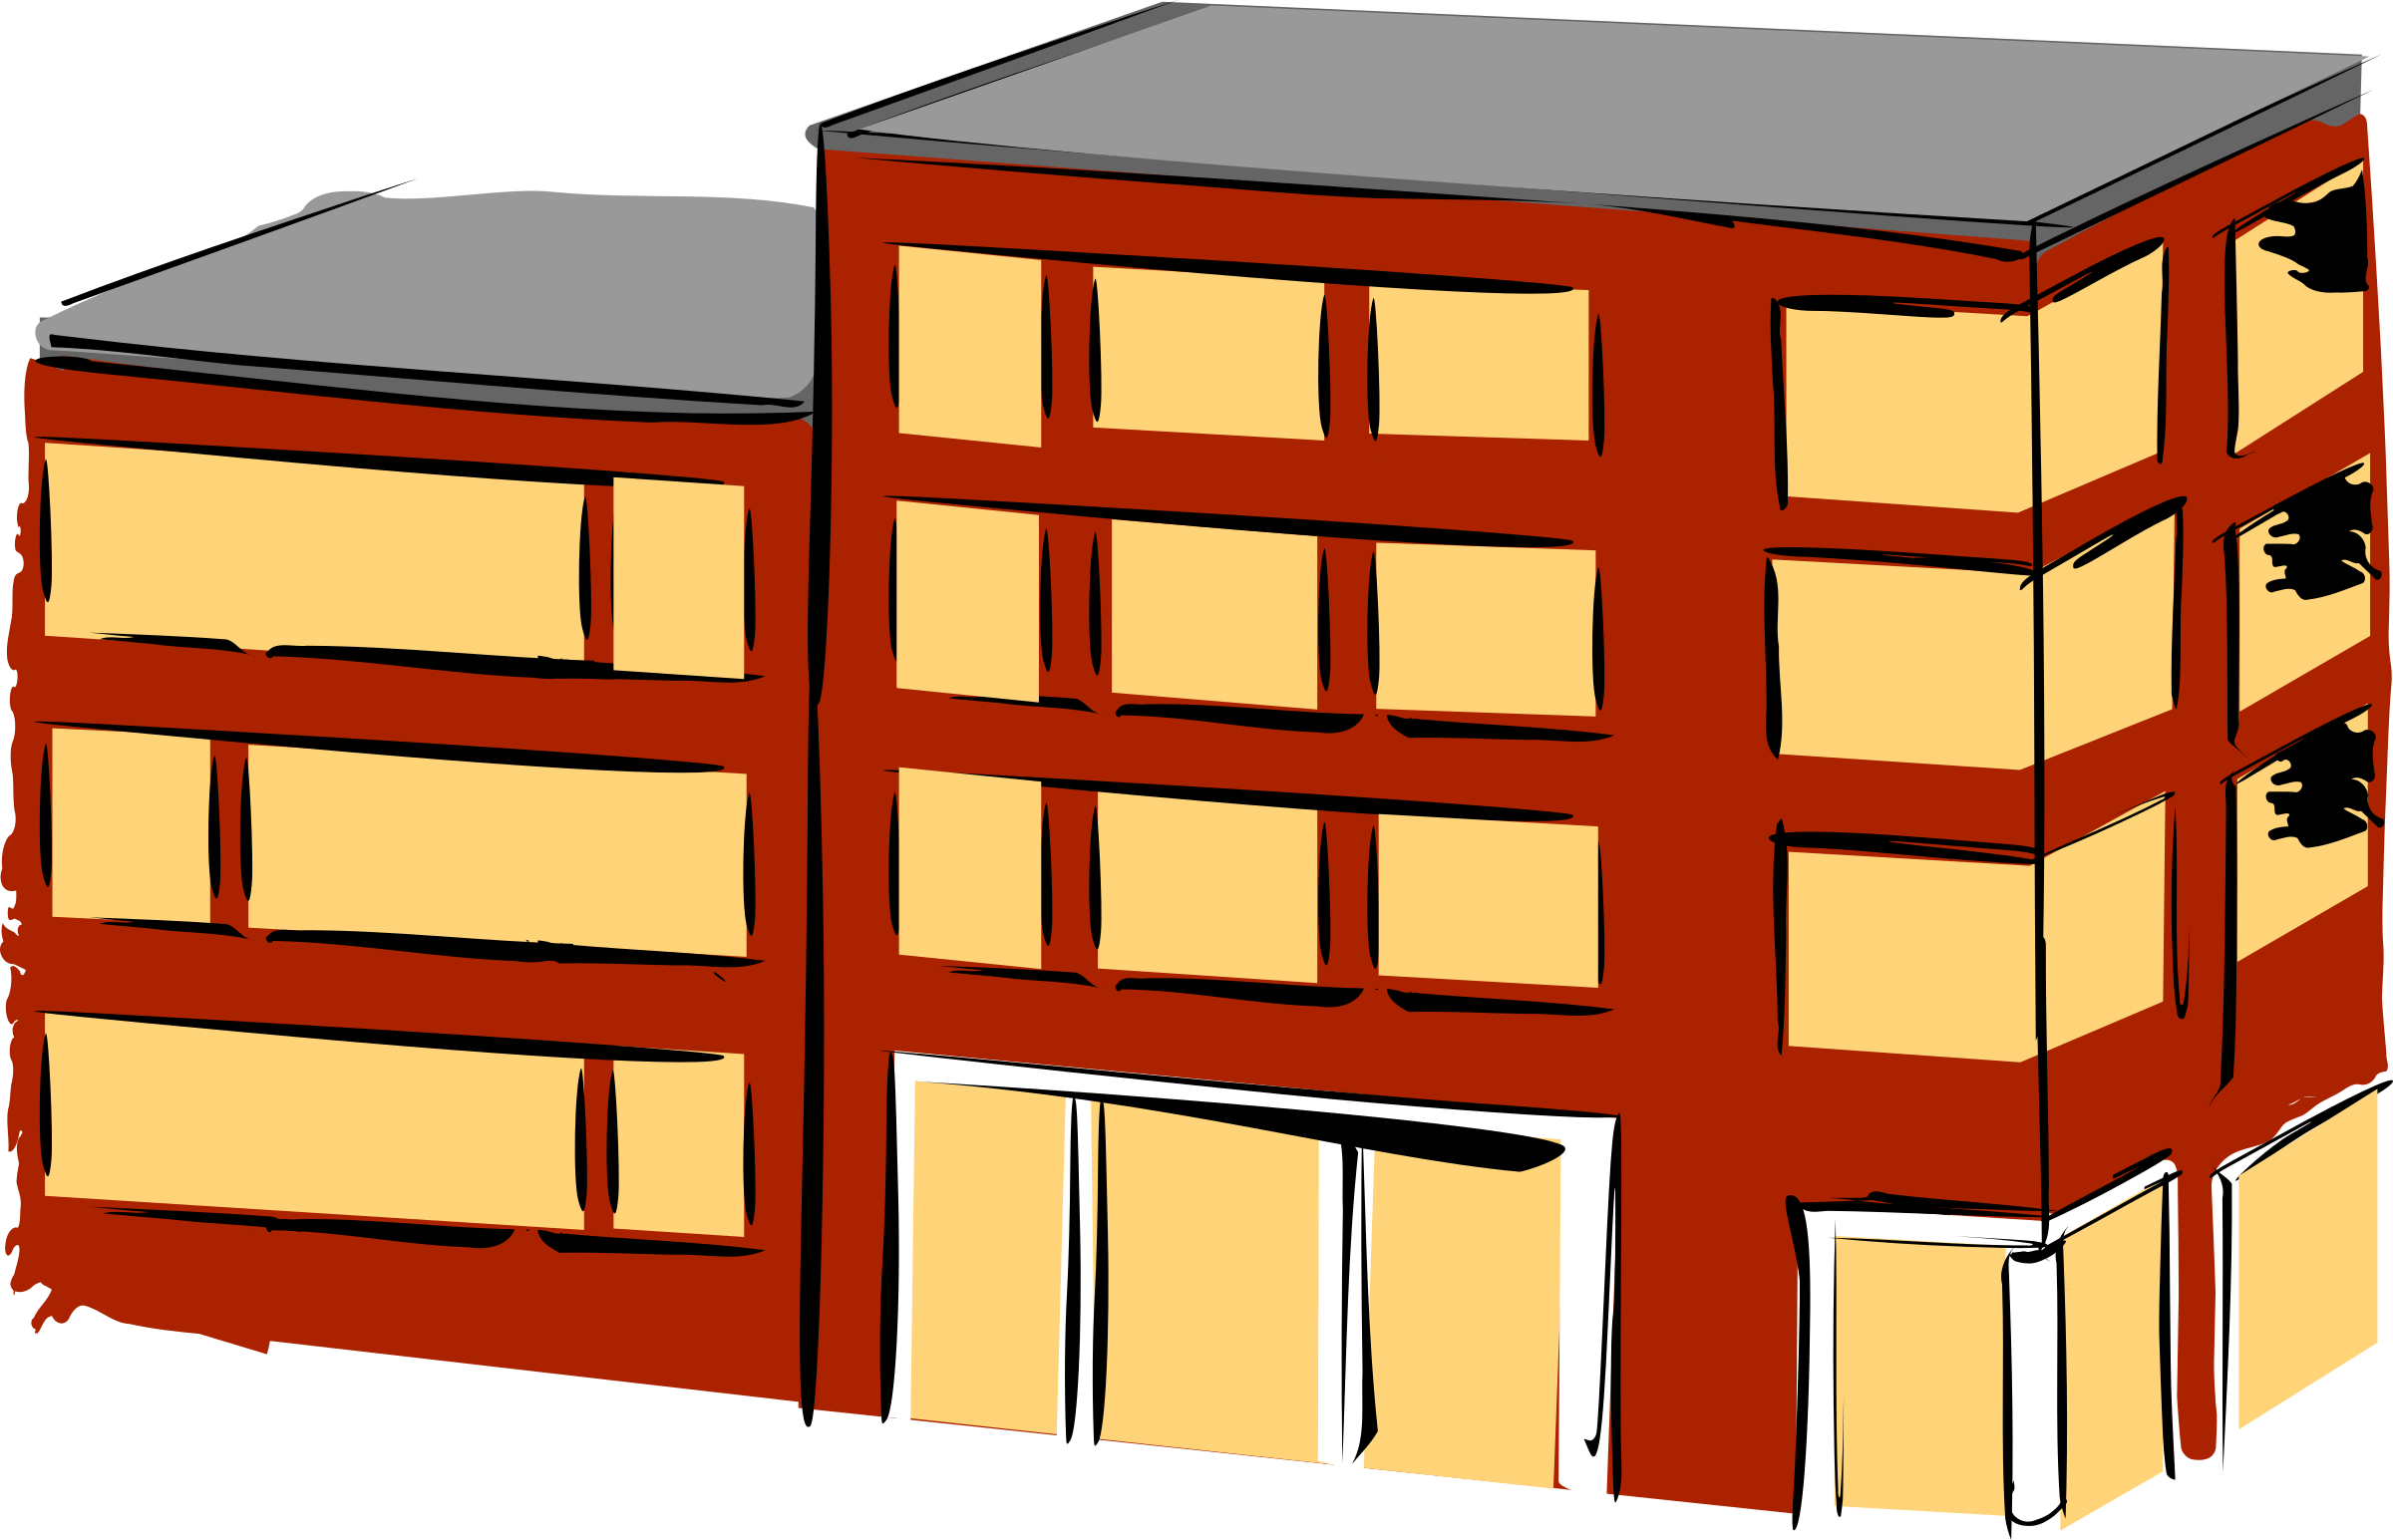 Clipart block of flats picture black and white download Clipart - Apartment building picture black and white download